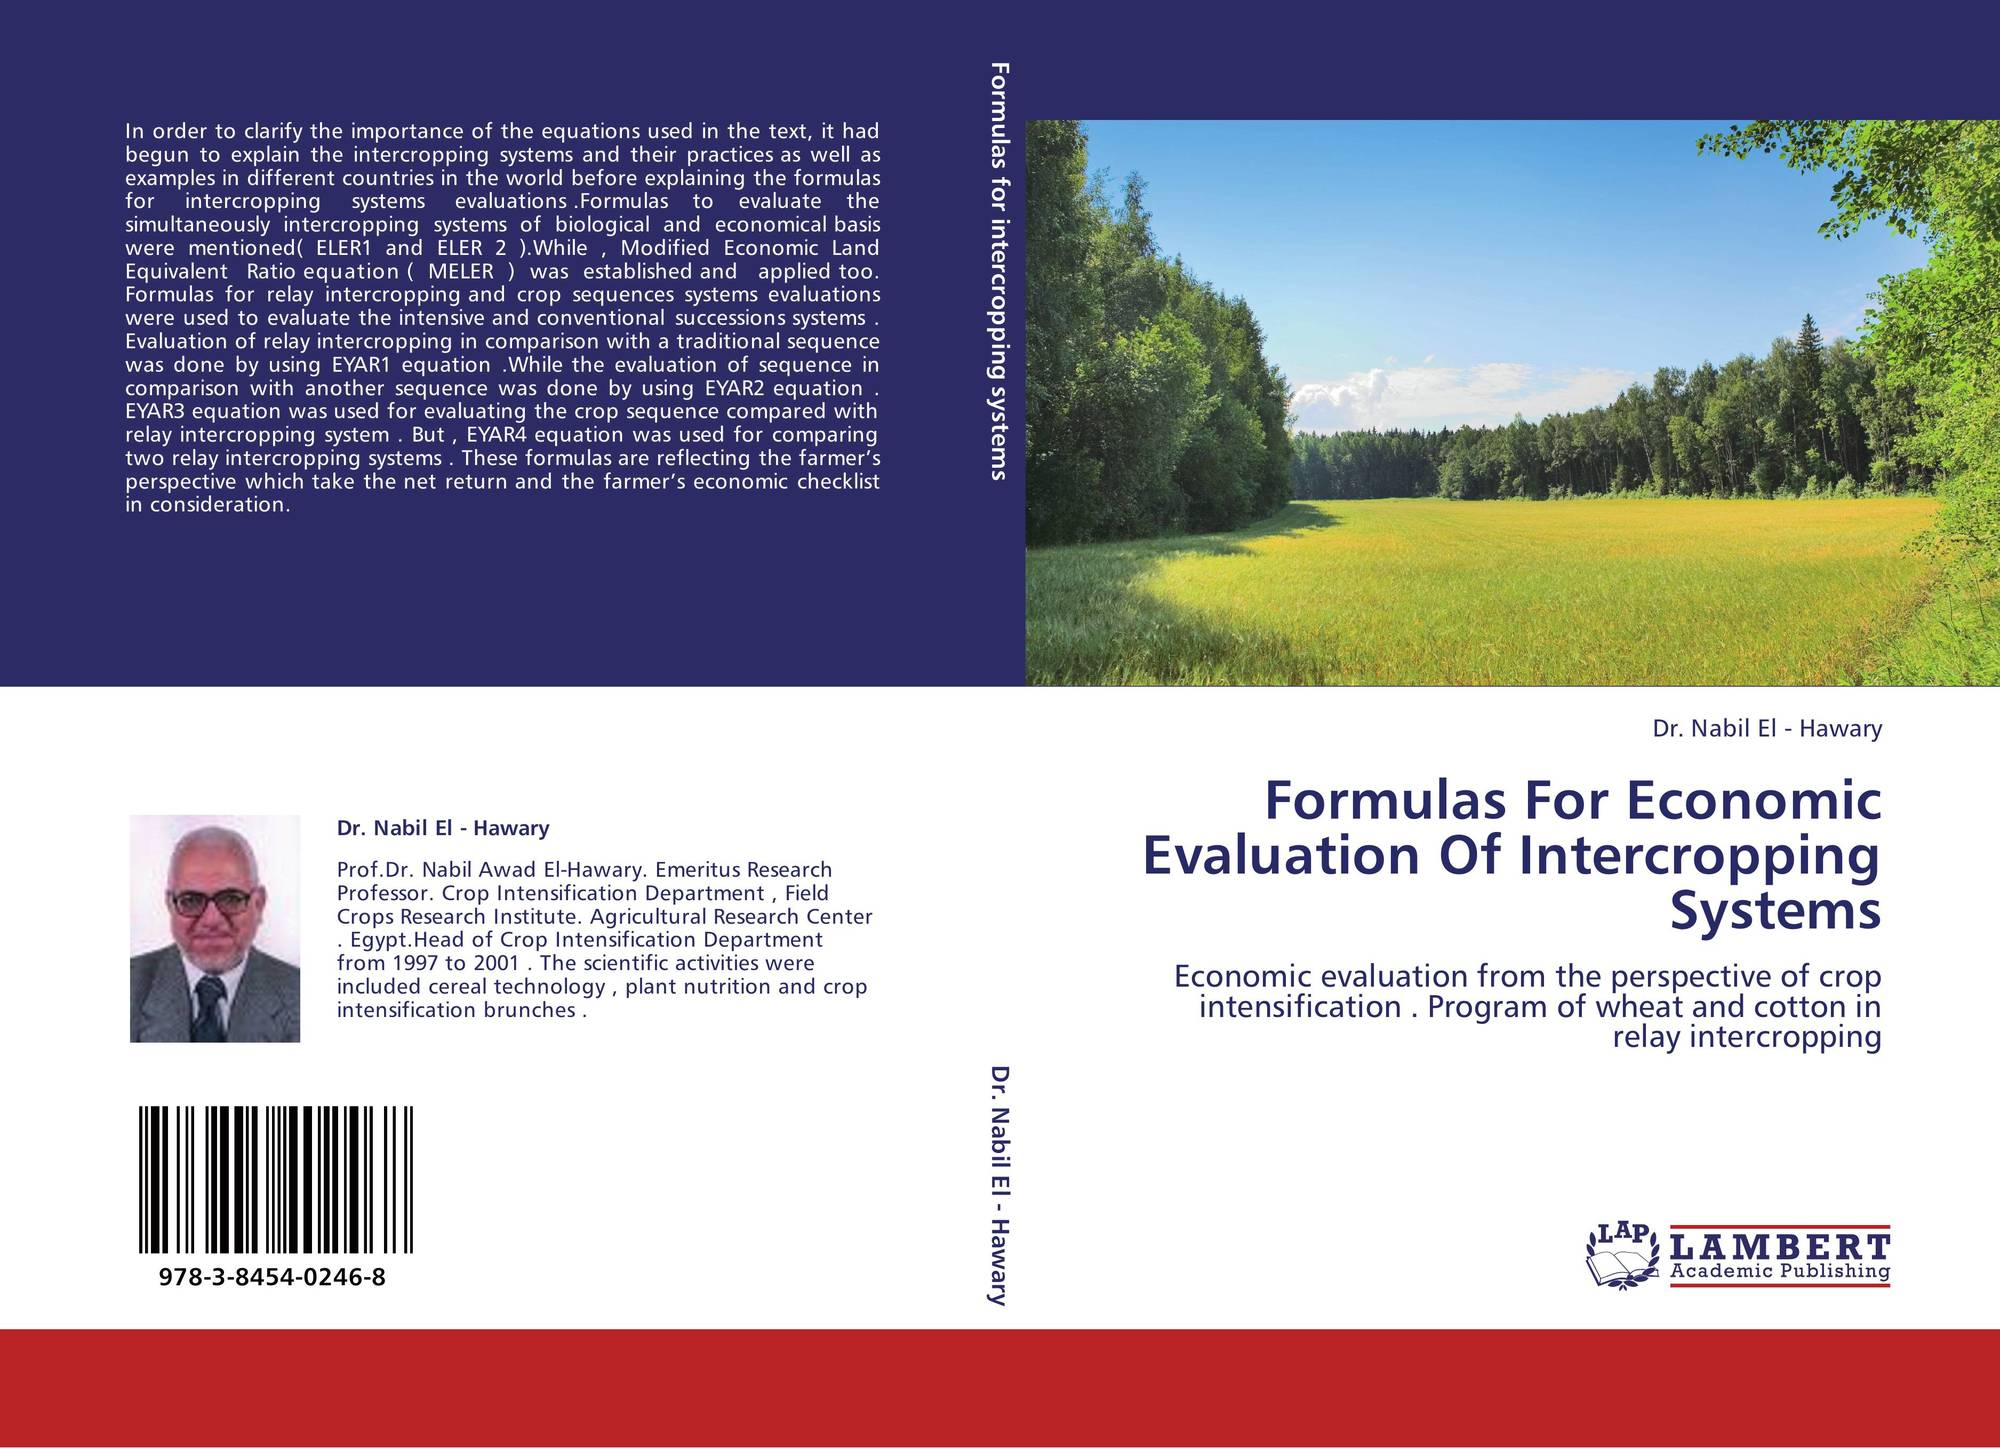 an evaluation of economic systems in canada What is an economy/economic system august 30, 2016 the lecture covers material that appears in the introductory chapter and first chapter krugman.